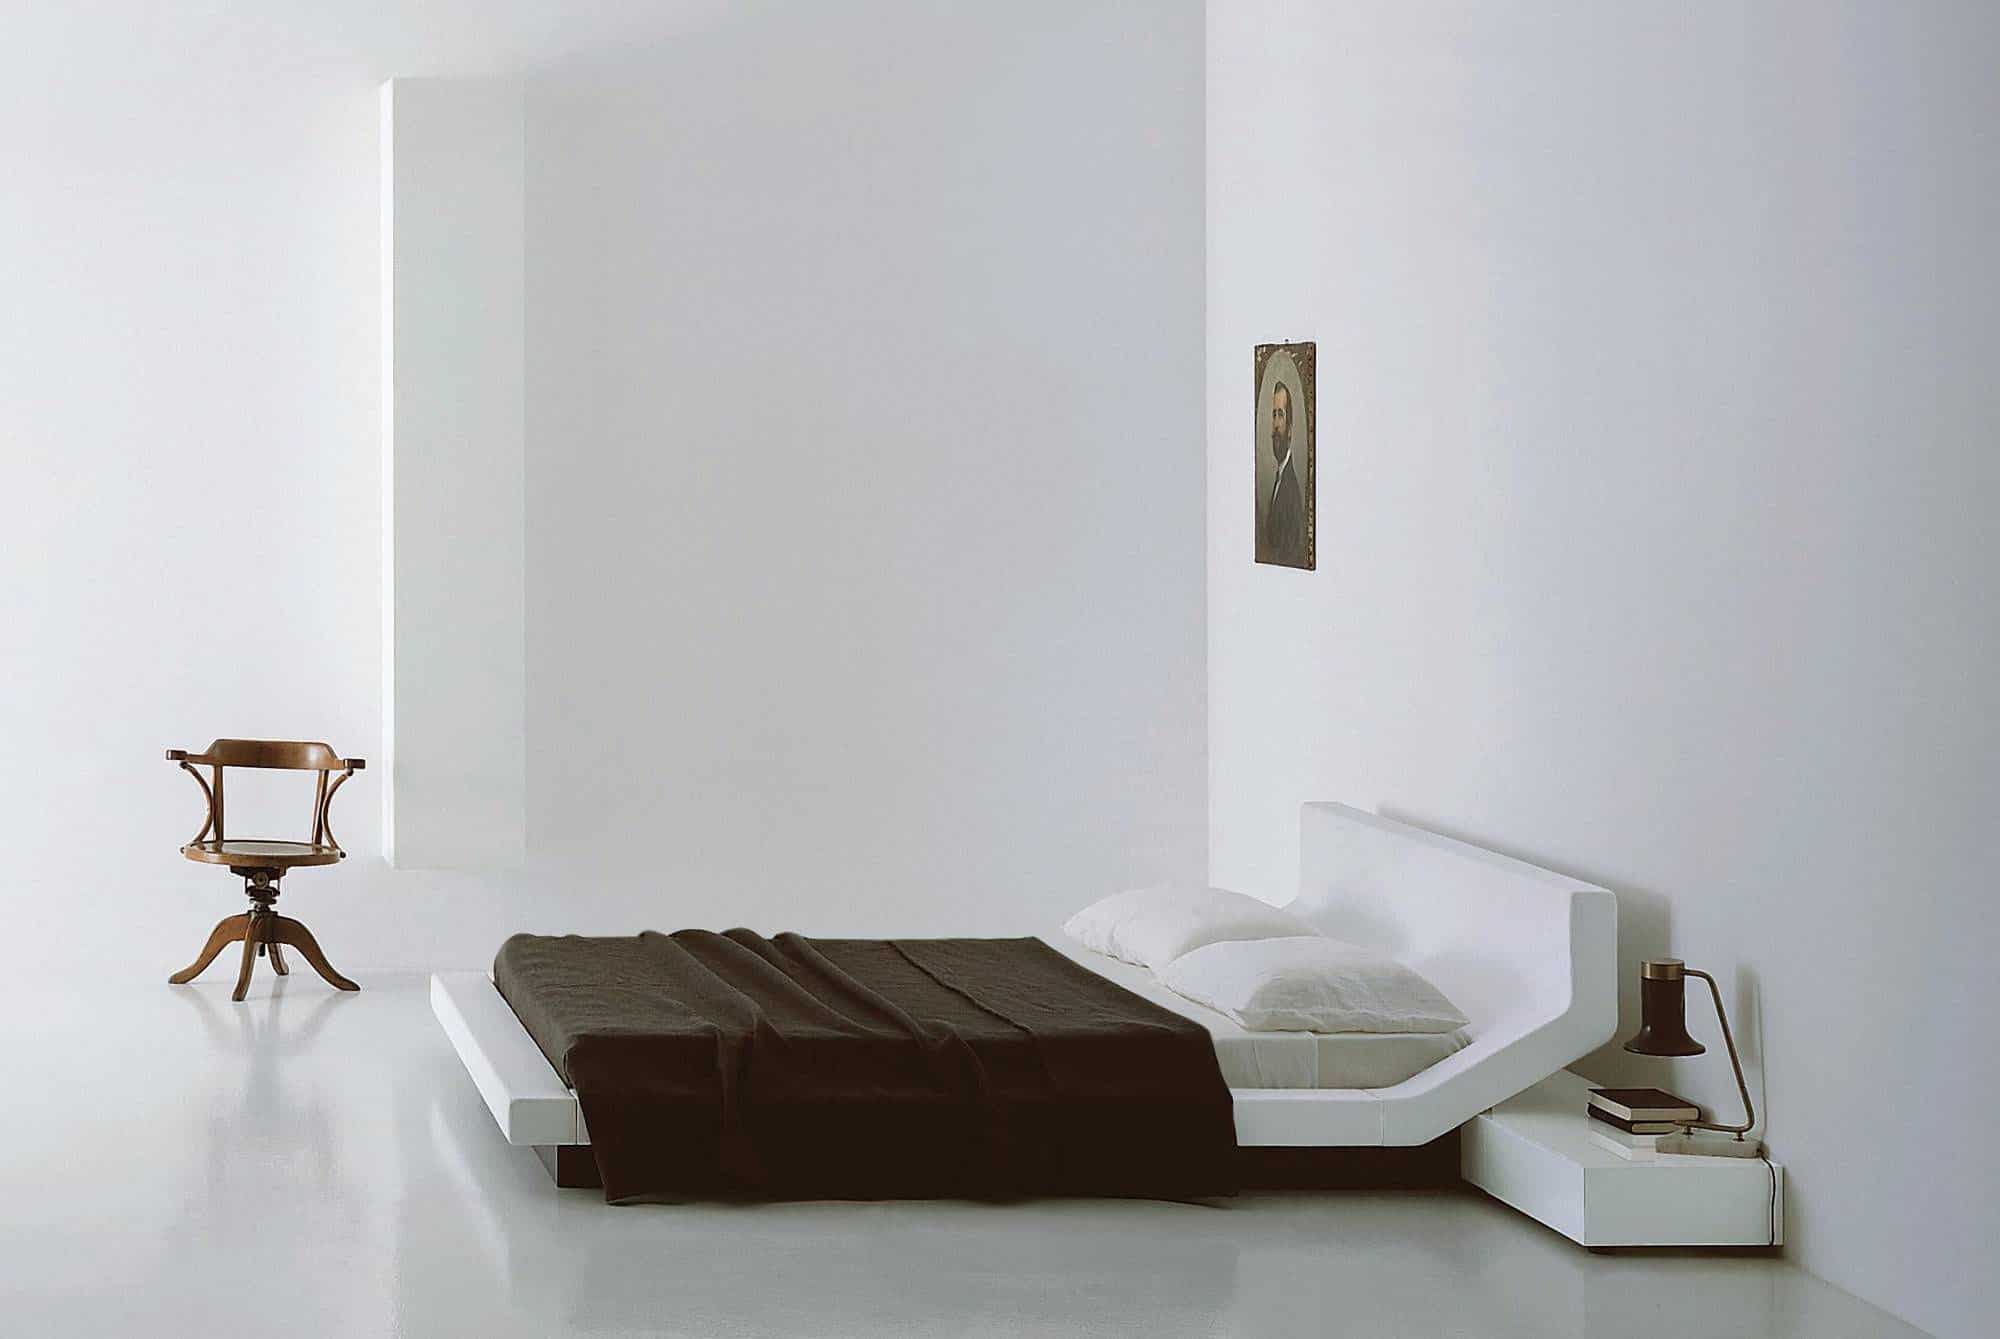 50 Modern Bedroom Design Ideas on Minimalist Modern Simple Bedroom Design  id=25770